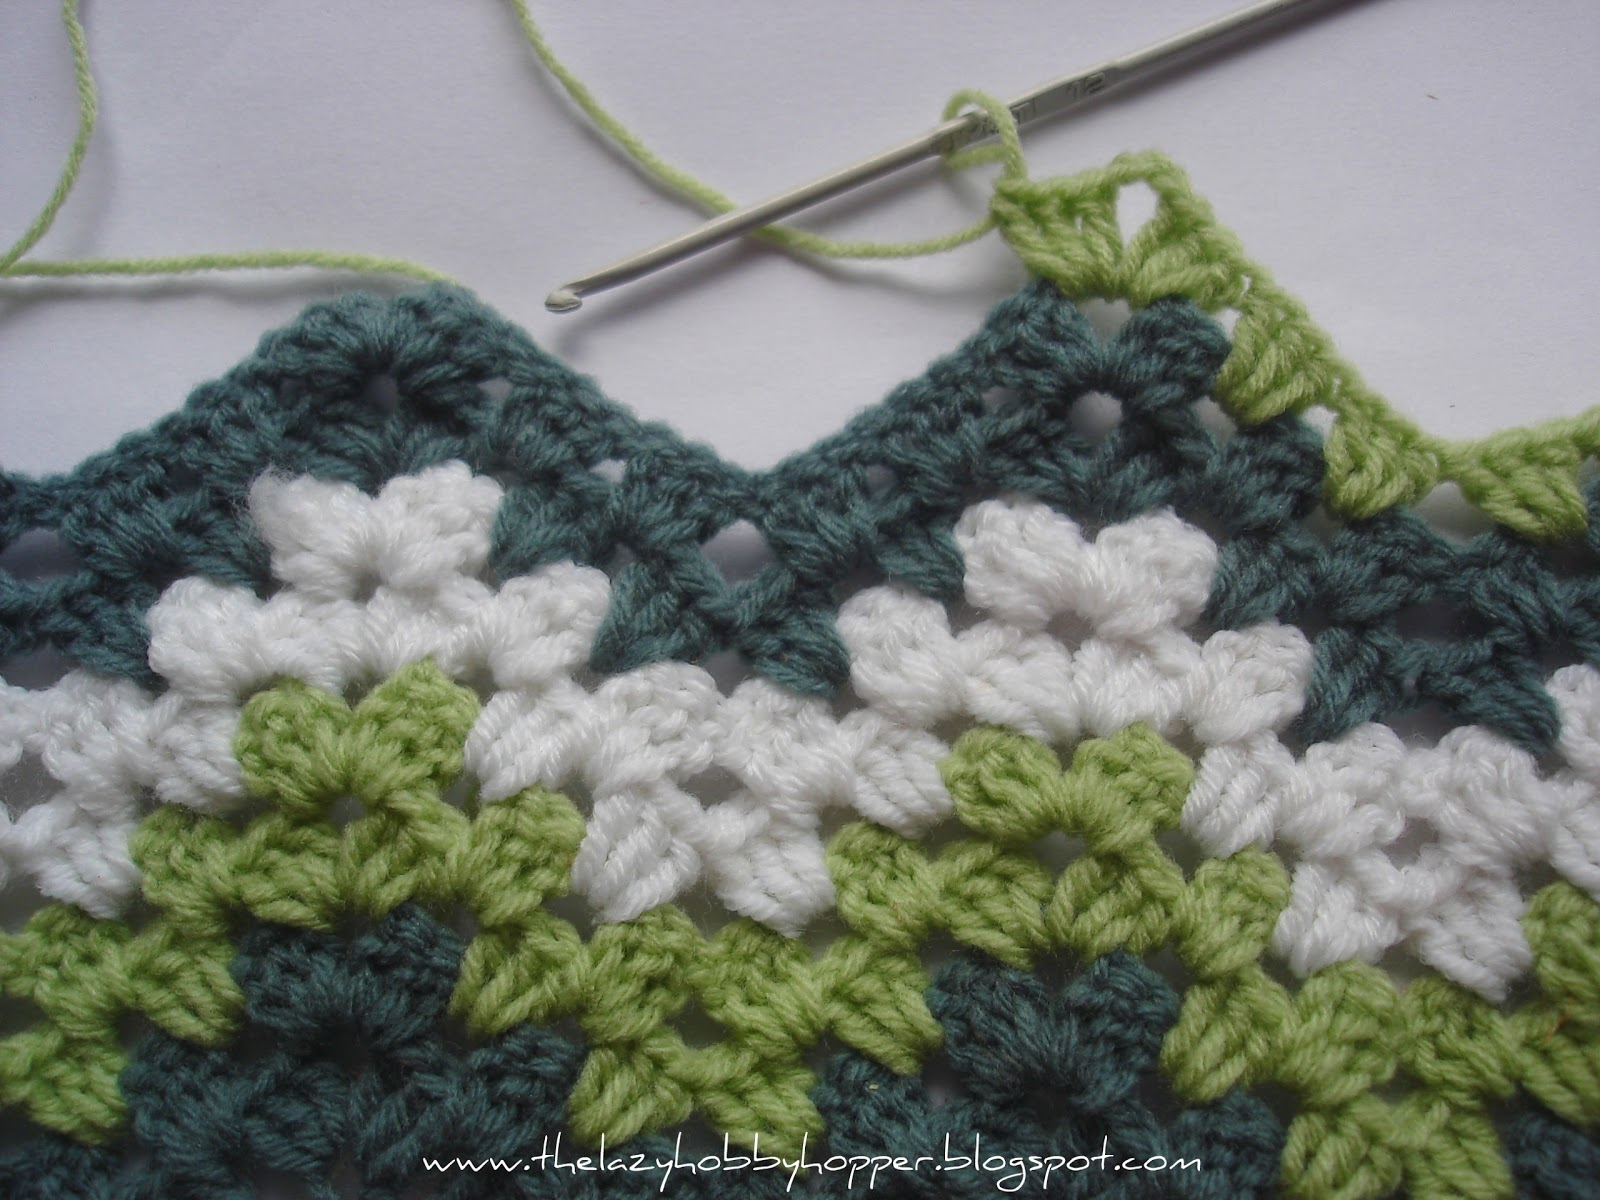 How To Crochet Tutorial Pictures : The Lazy Hobbyhopper: How to crochet granny ripple